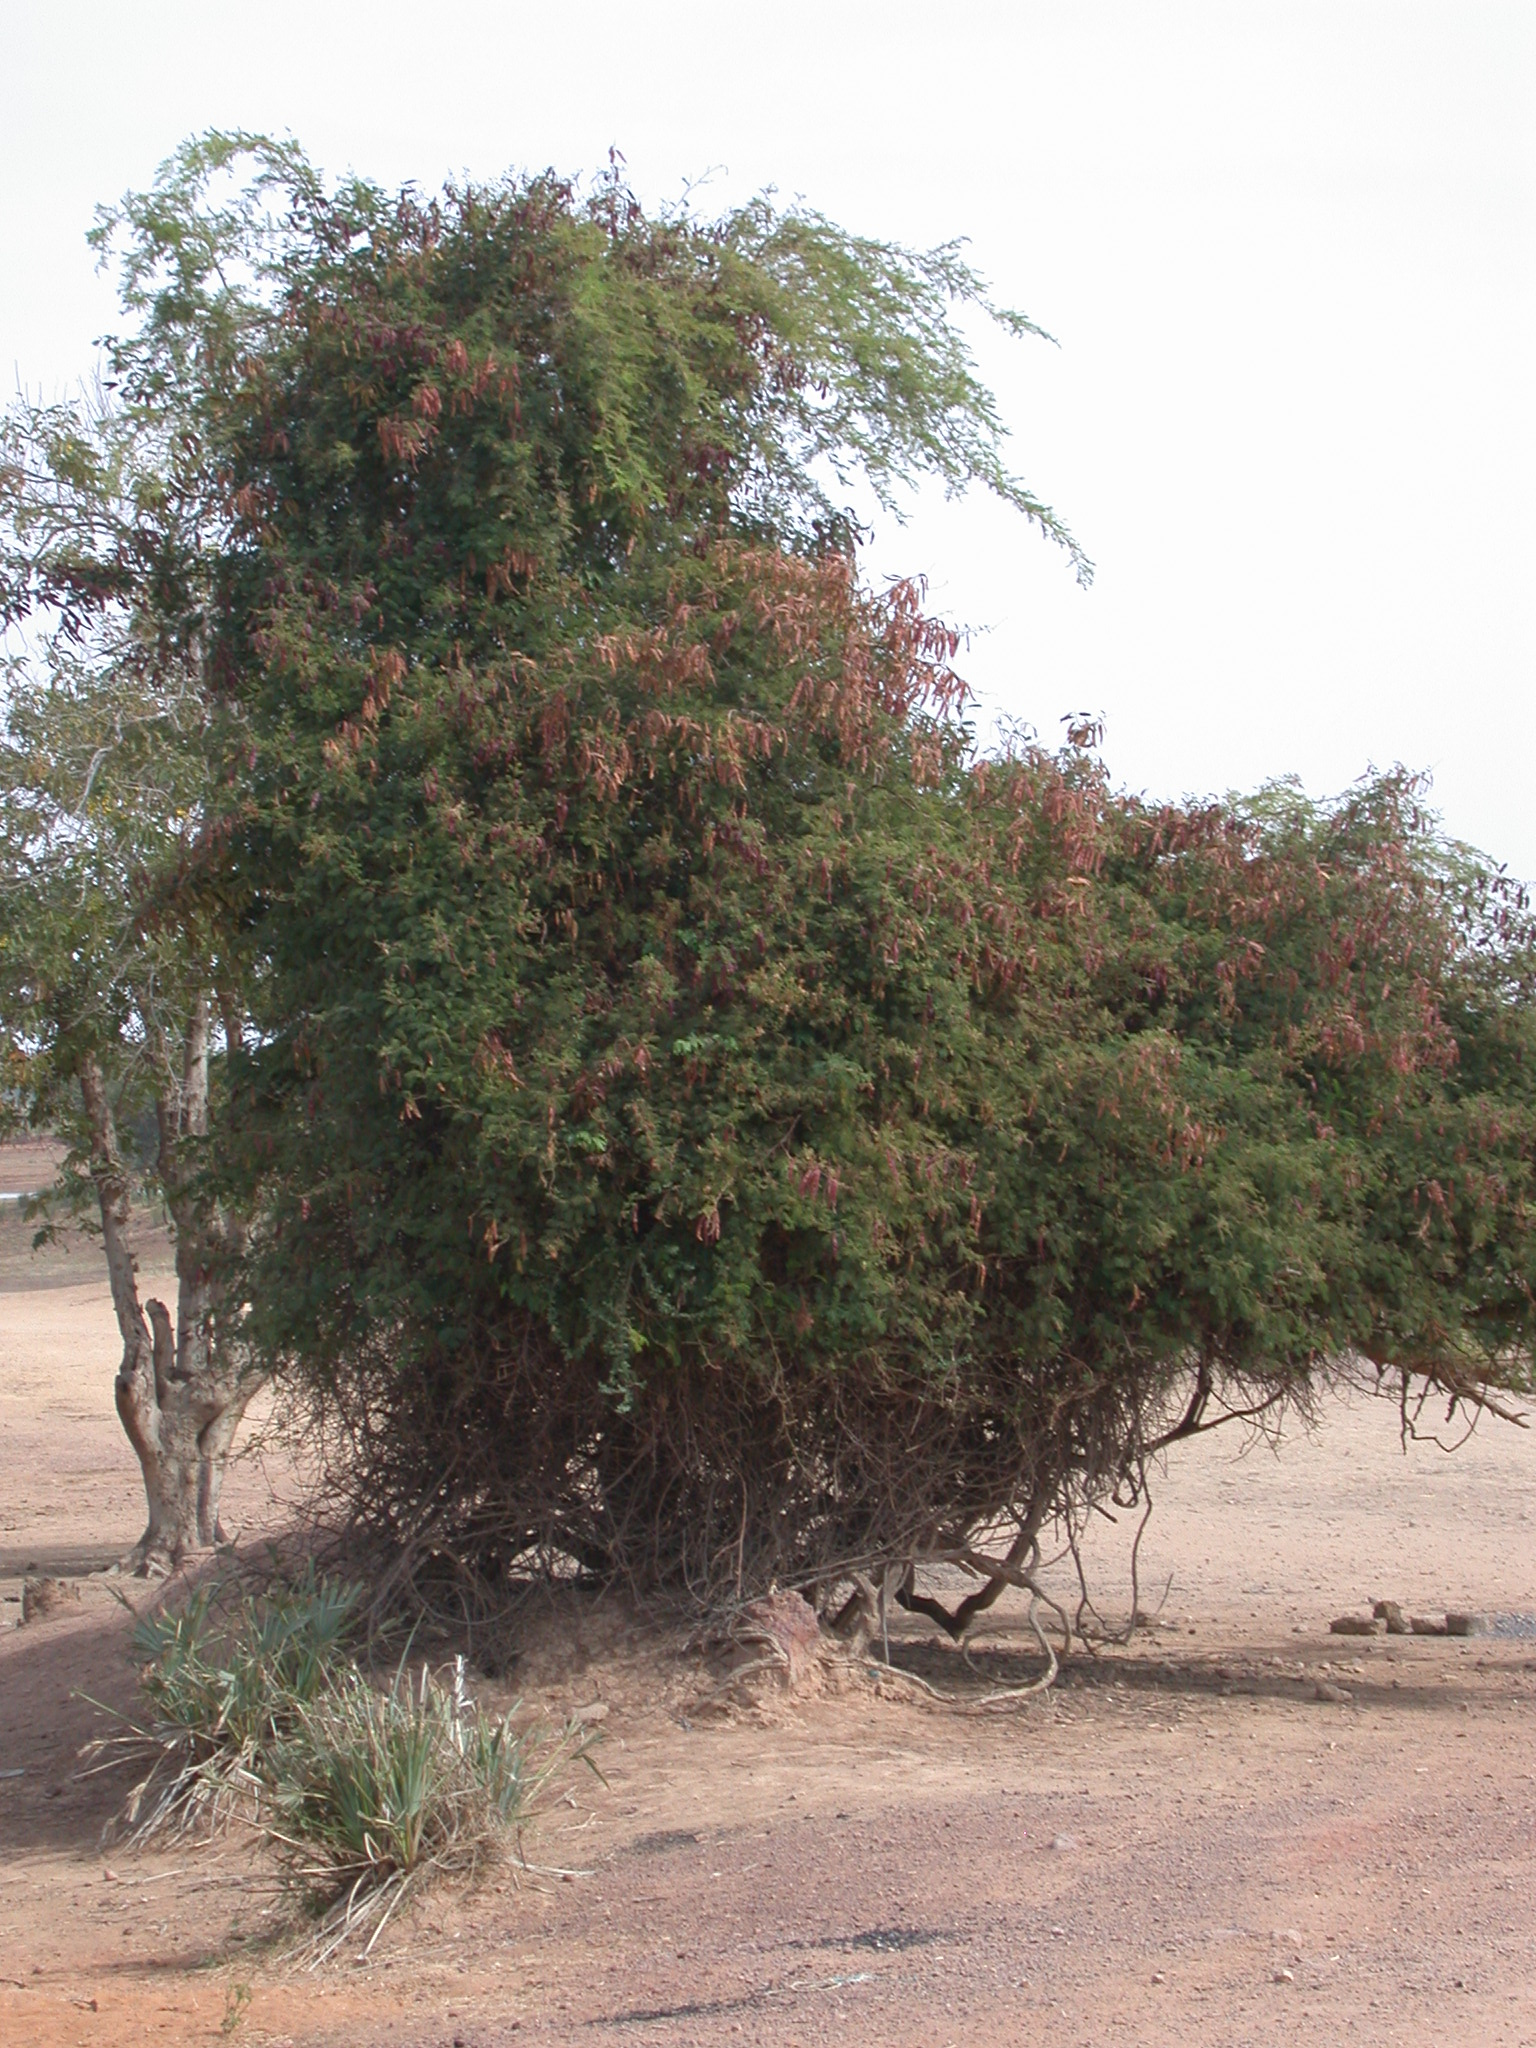 Probably Tamarind Tree on Road From Nioro to Massina, Mali